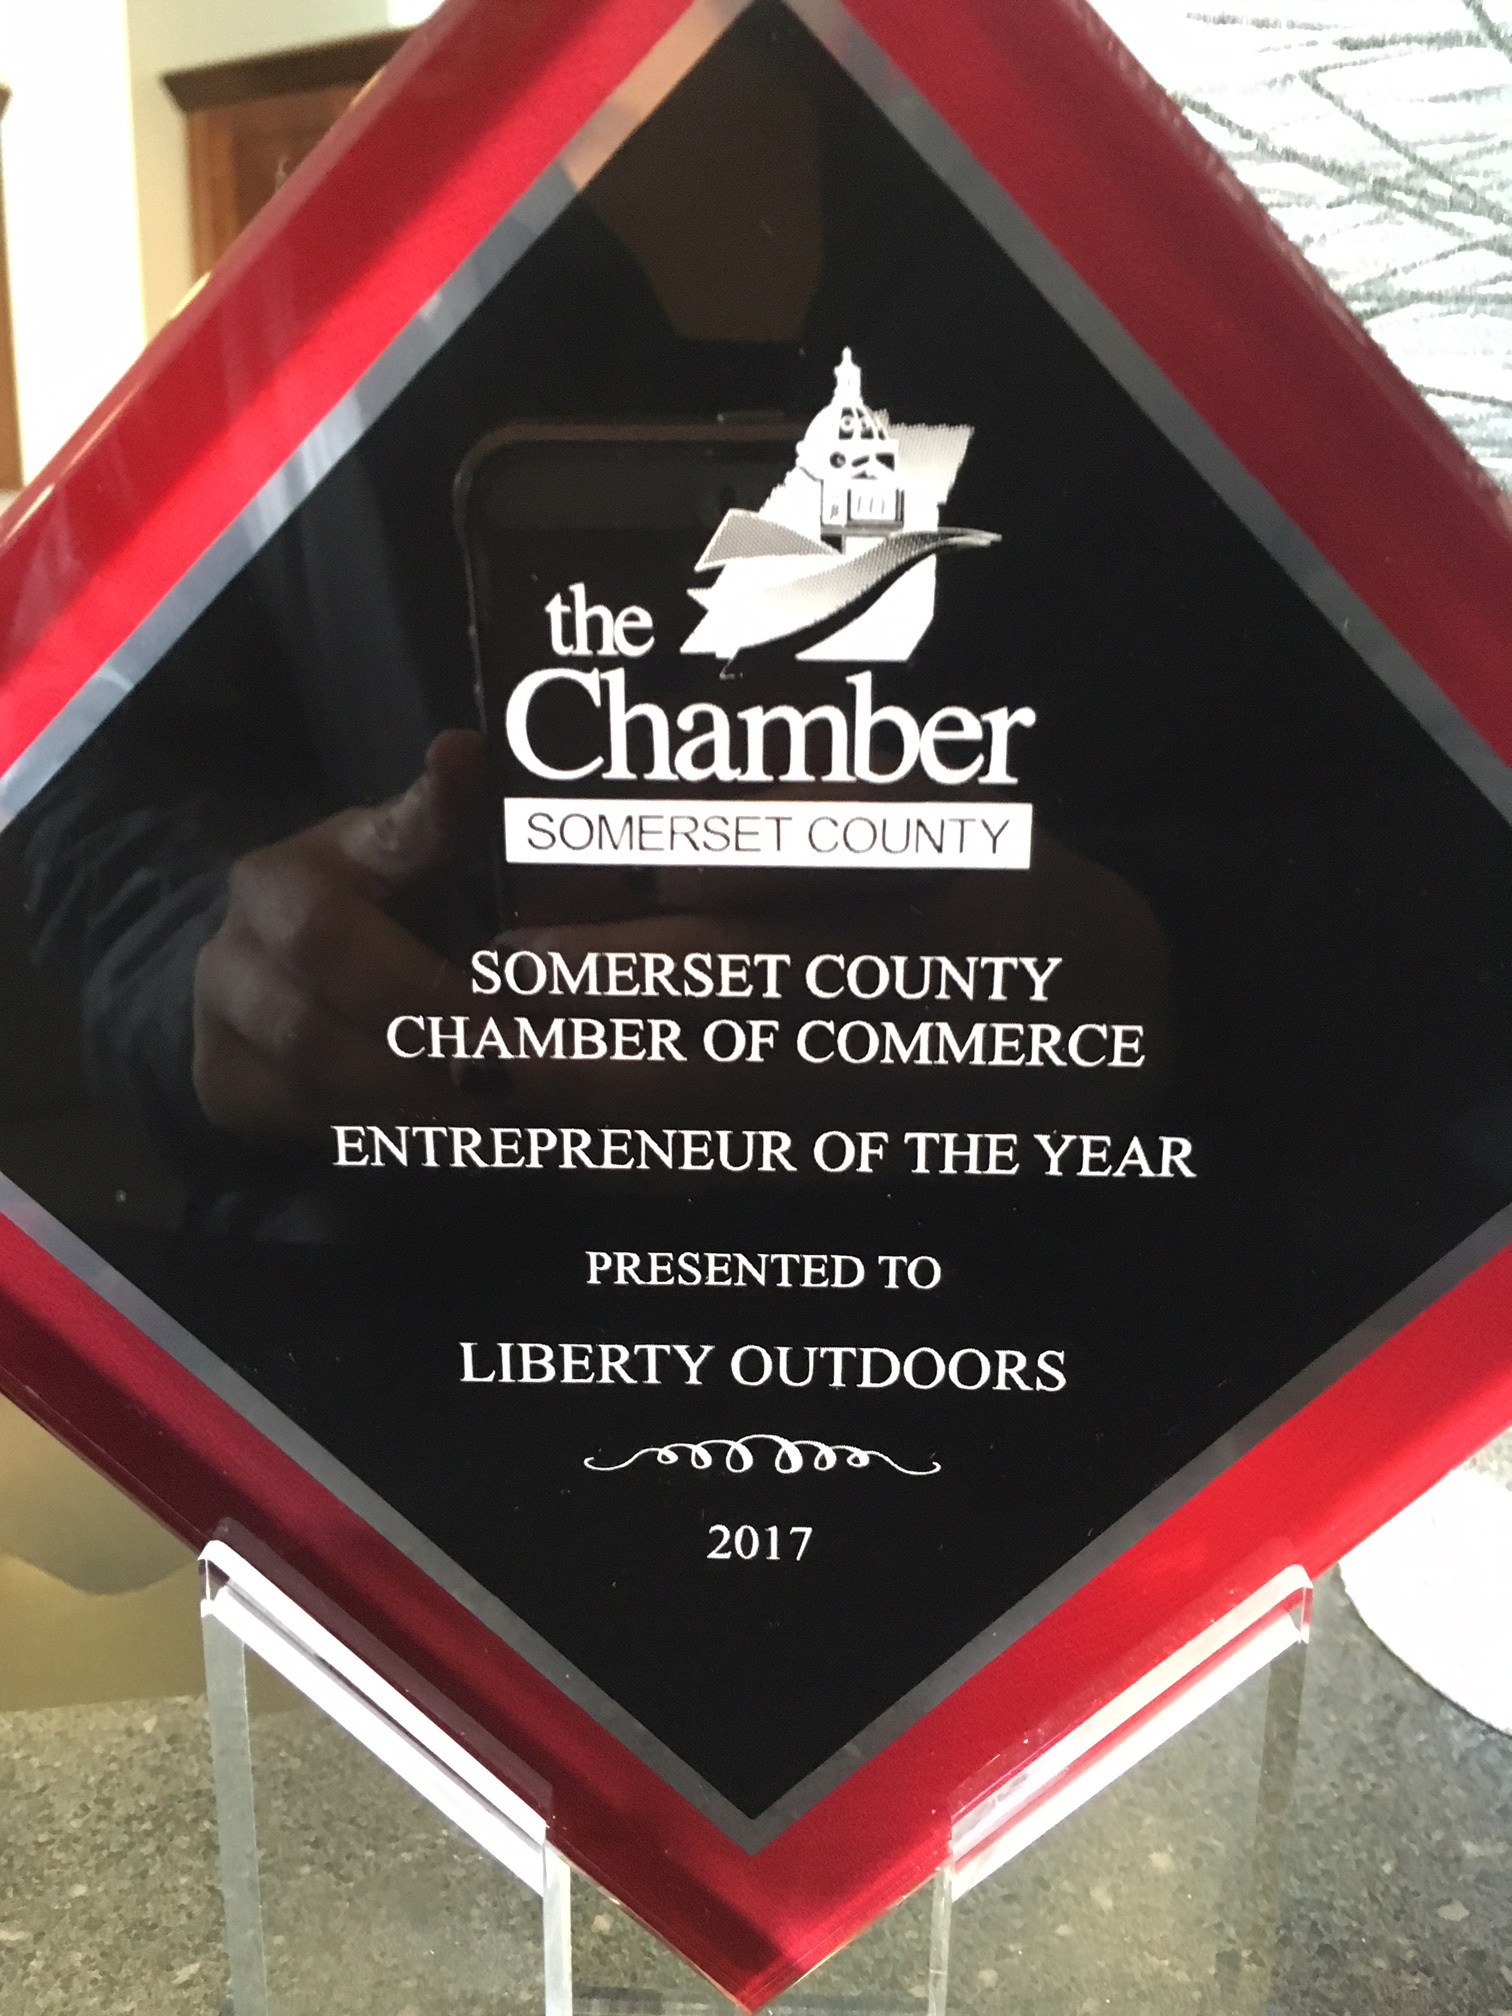 Entrepreneur of the Year Award Plaque